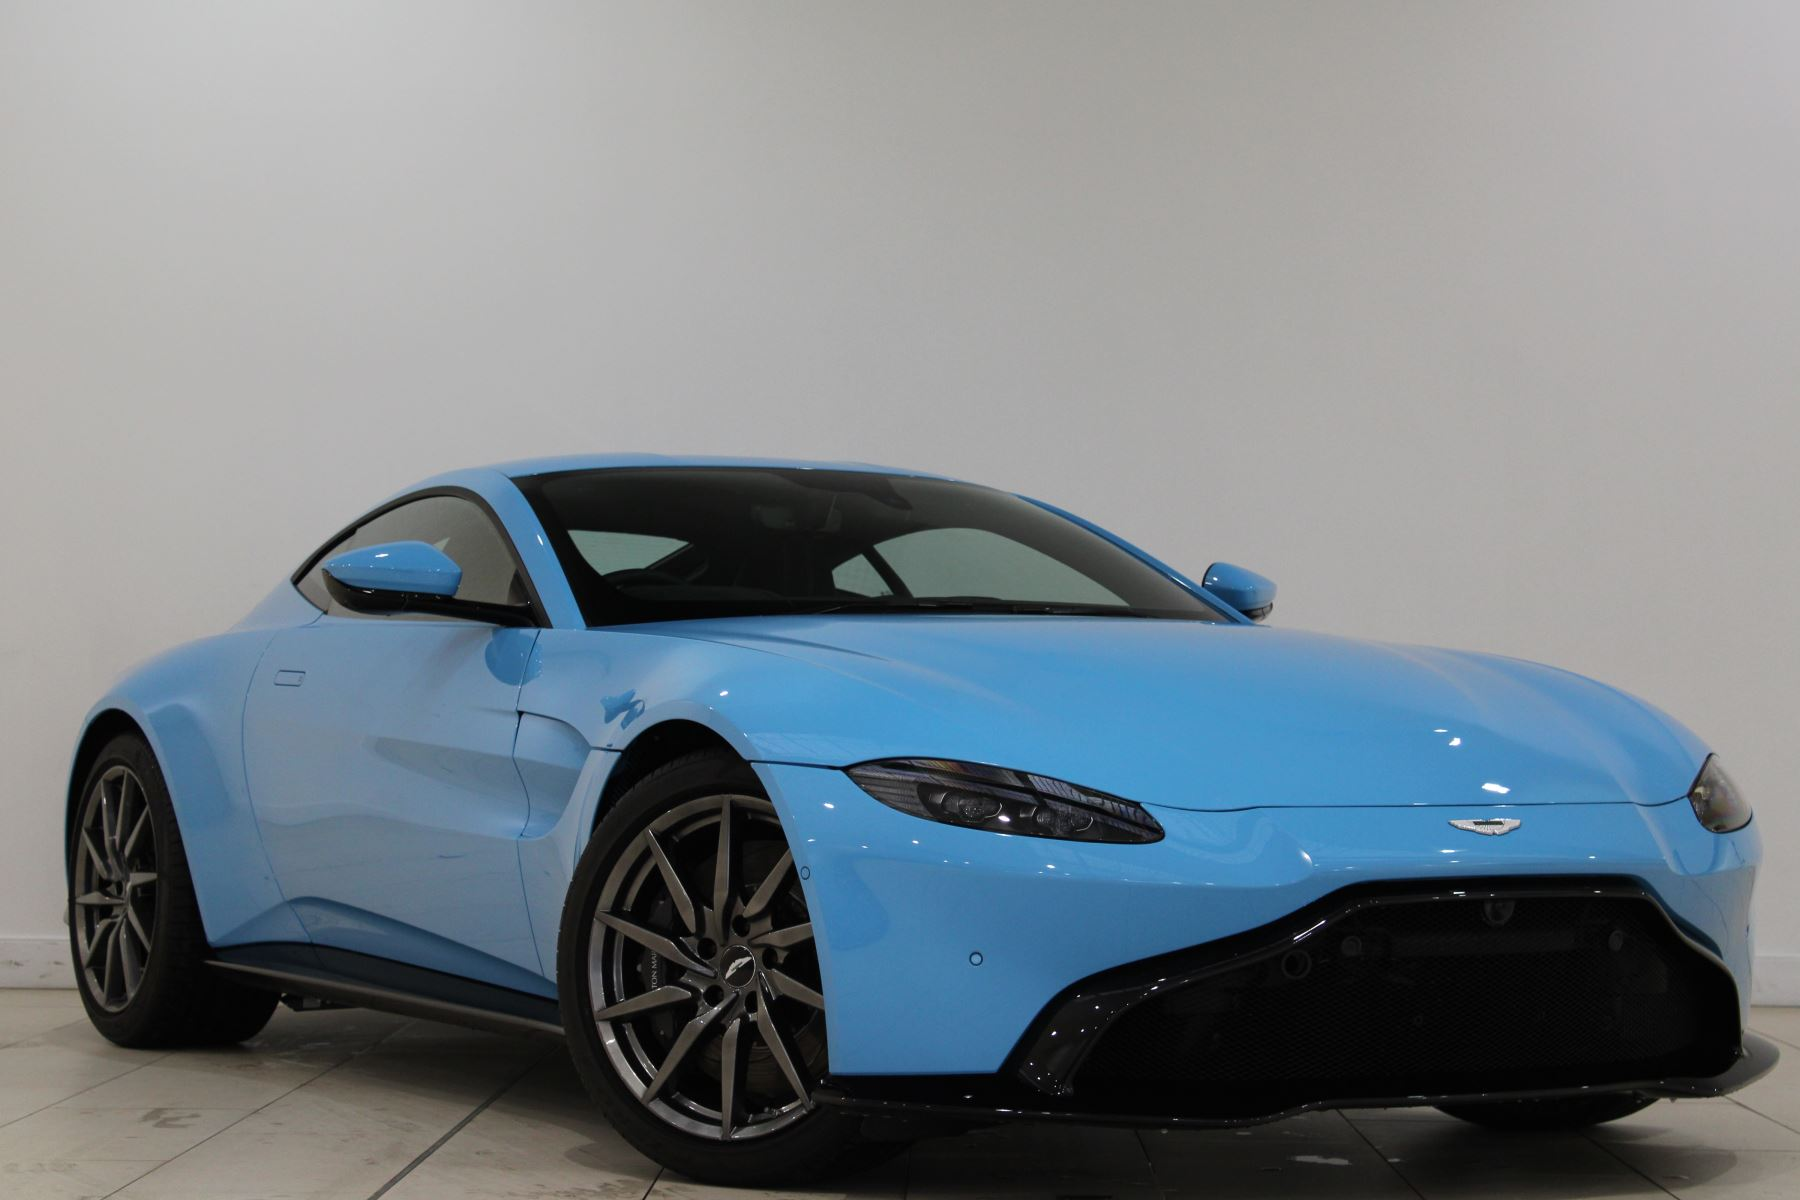 Aston Martin New Vantage 2dr 4.0 3 door Coupe (2020)